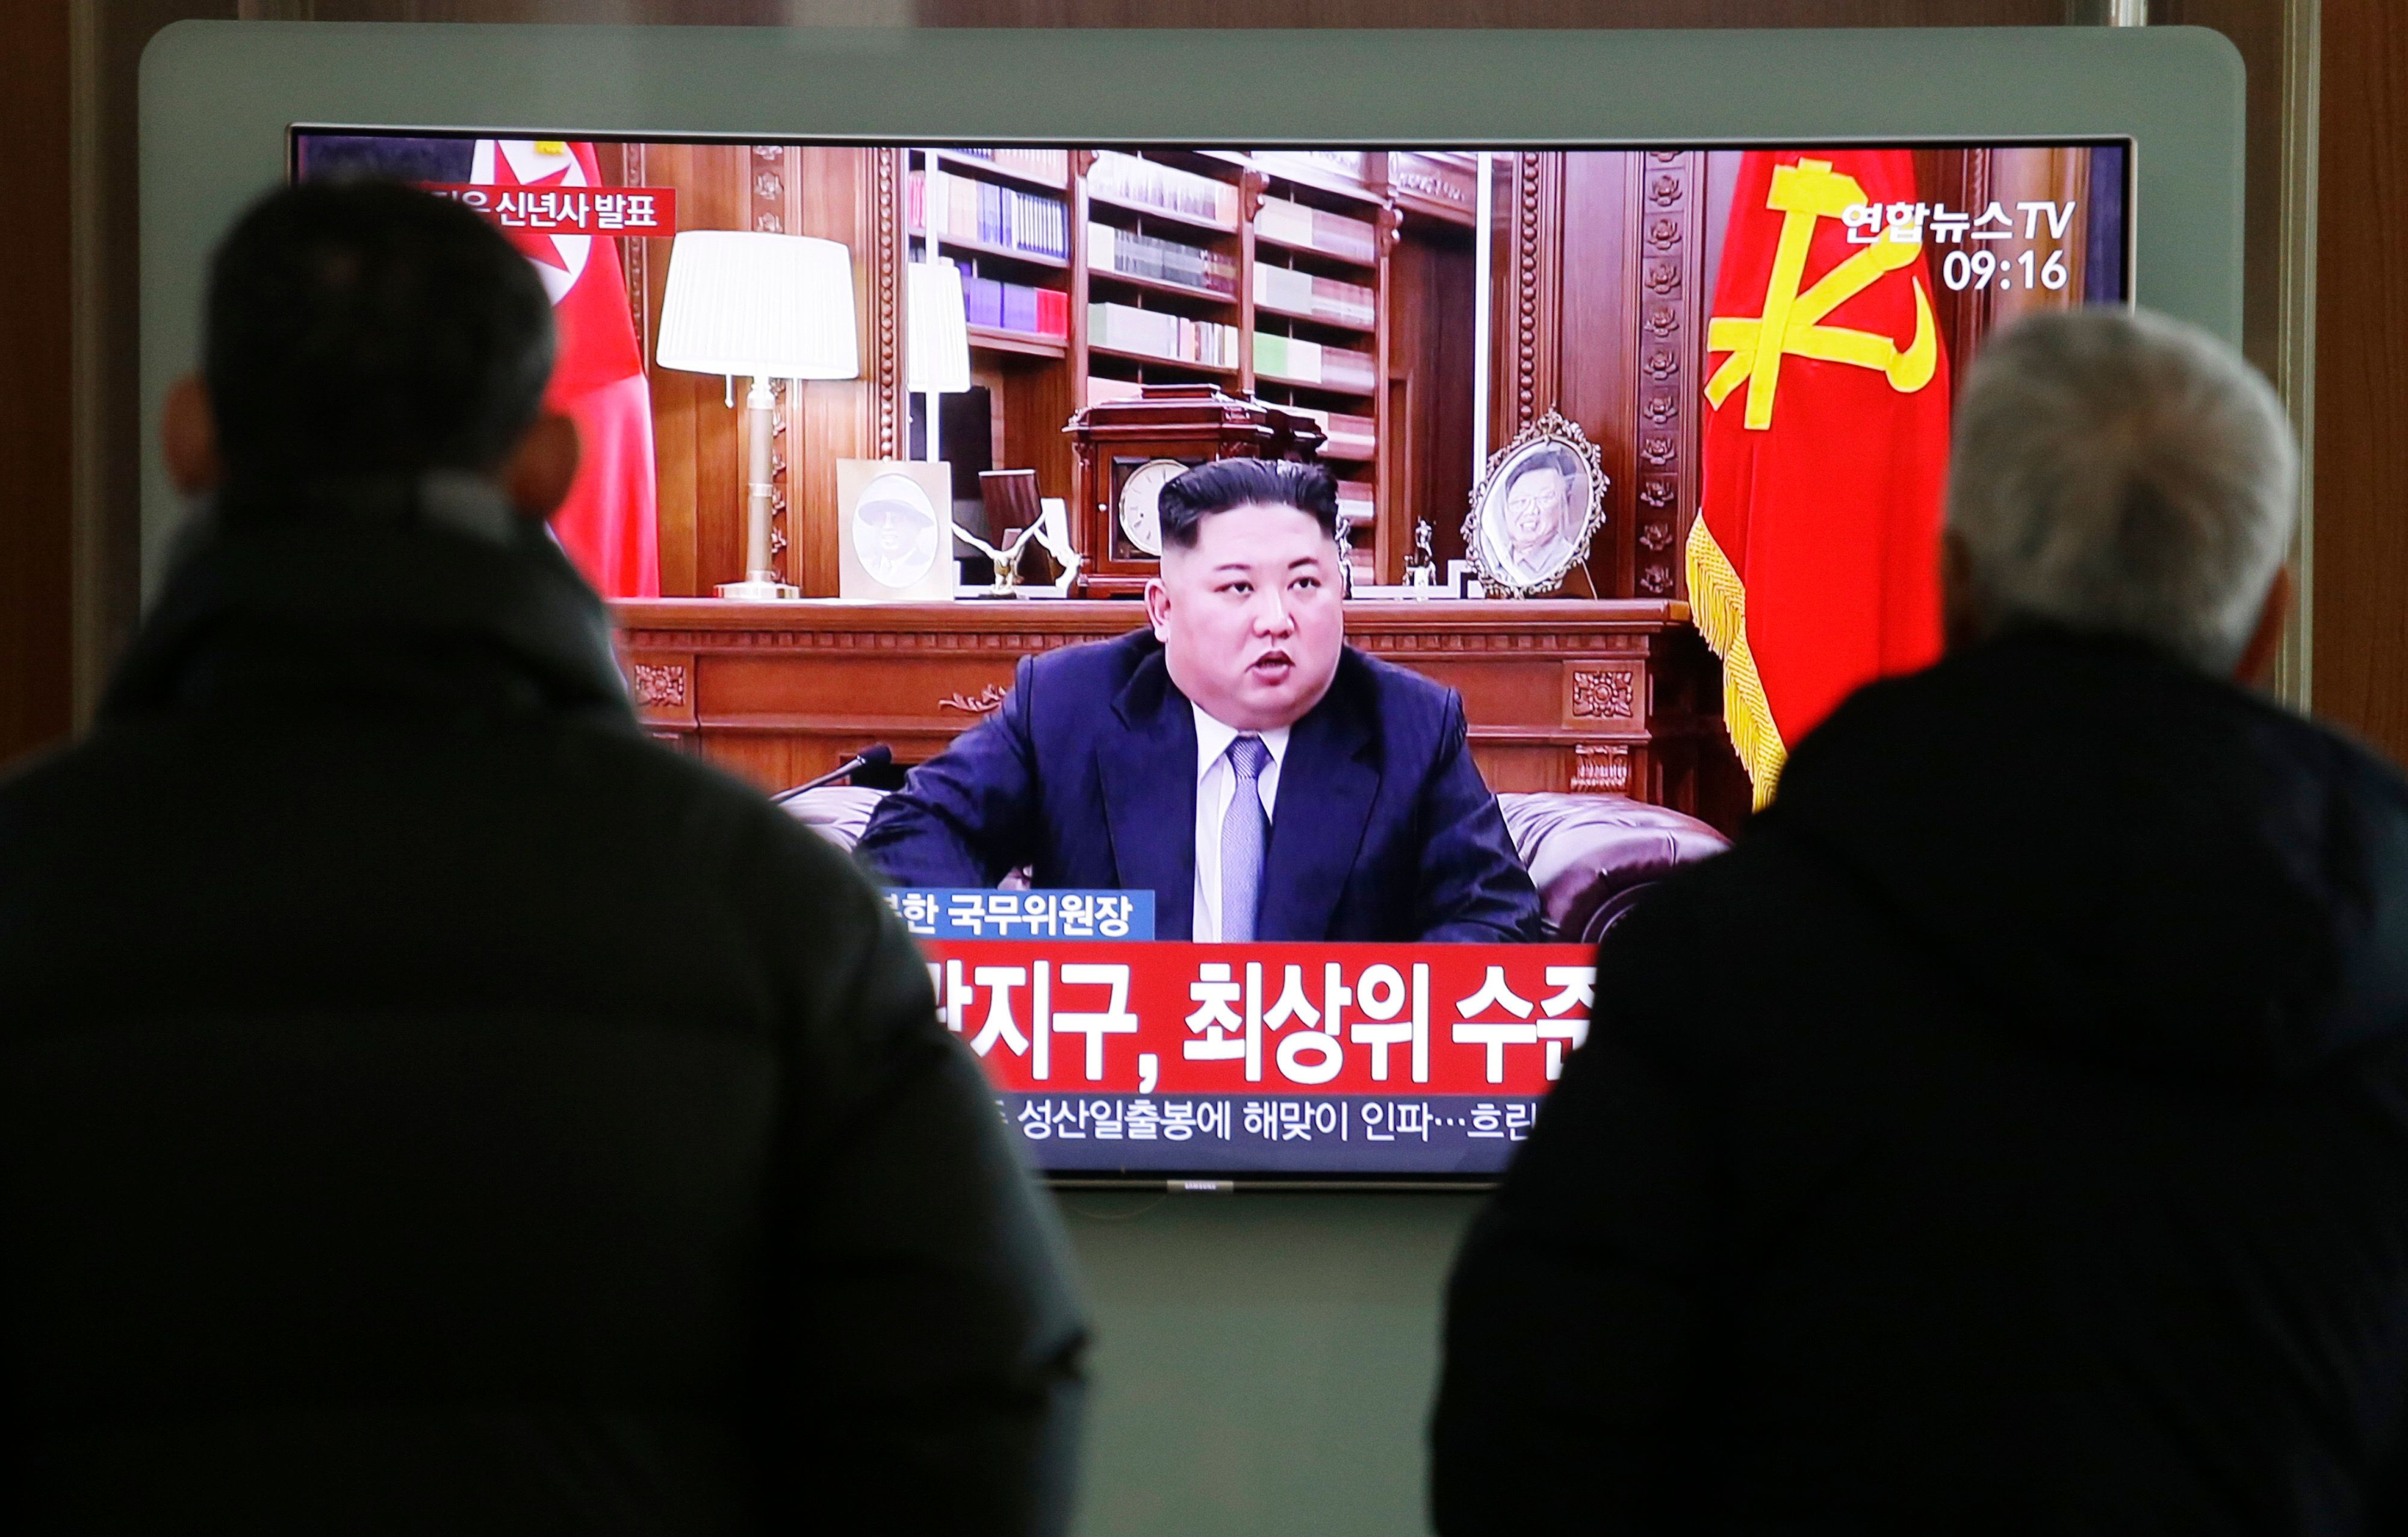 "People watch a TV screen showing North Korean leader Kim Jong Un delivering a New Year's speech, at Seoul Railway Station in Seoul, South Korea, Tuesday, Jan. 1, 2019. The letters on the screen read: "" The best level."" North Korean leader Kim says he hopes to extend his high-stakes nuclear summitry with President Donald Trump into 2019, but also warns Washington not to test North Koreans' patience with sanctions and pressure. (AP Photo/Ahn Young-joon)"